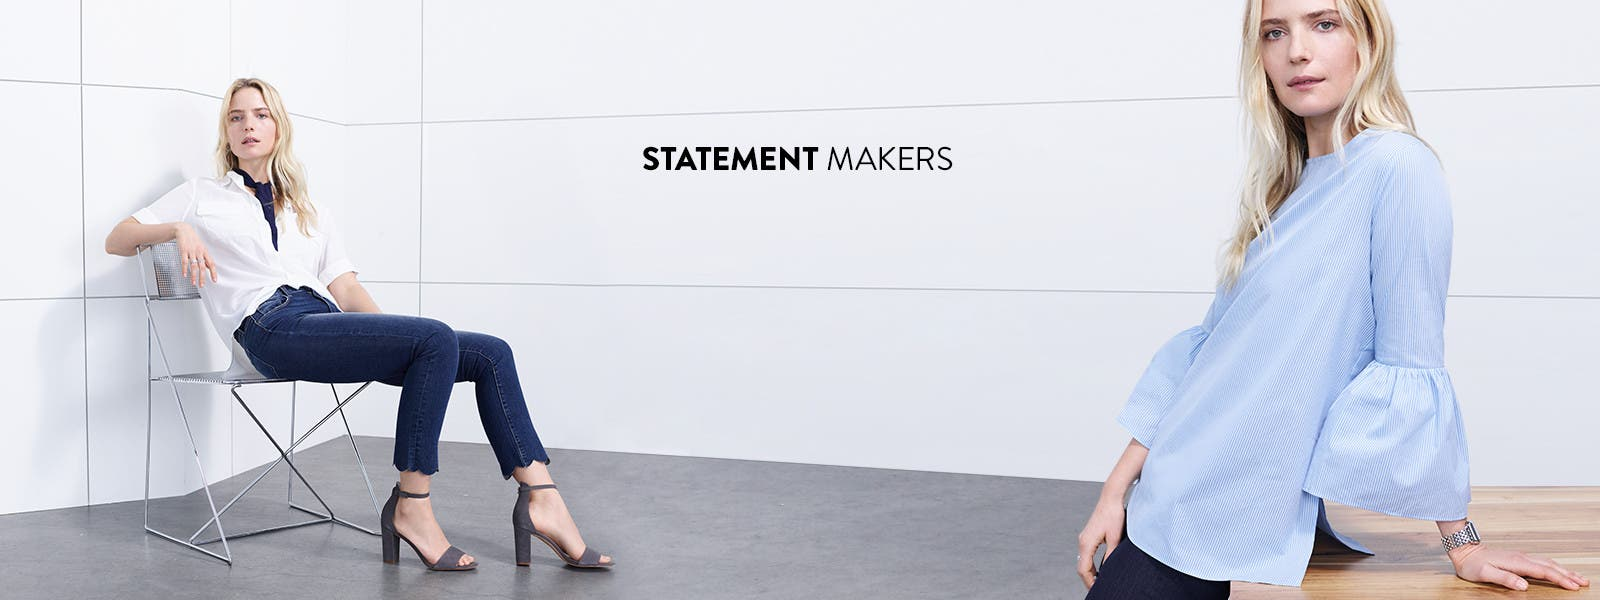 Statement makers.